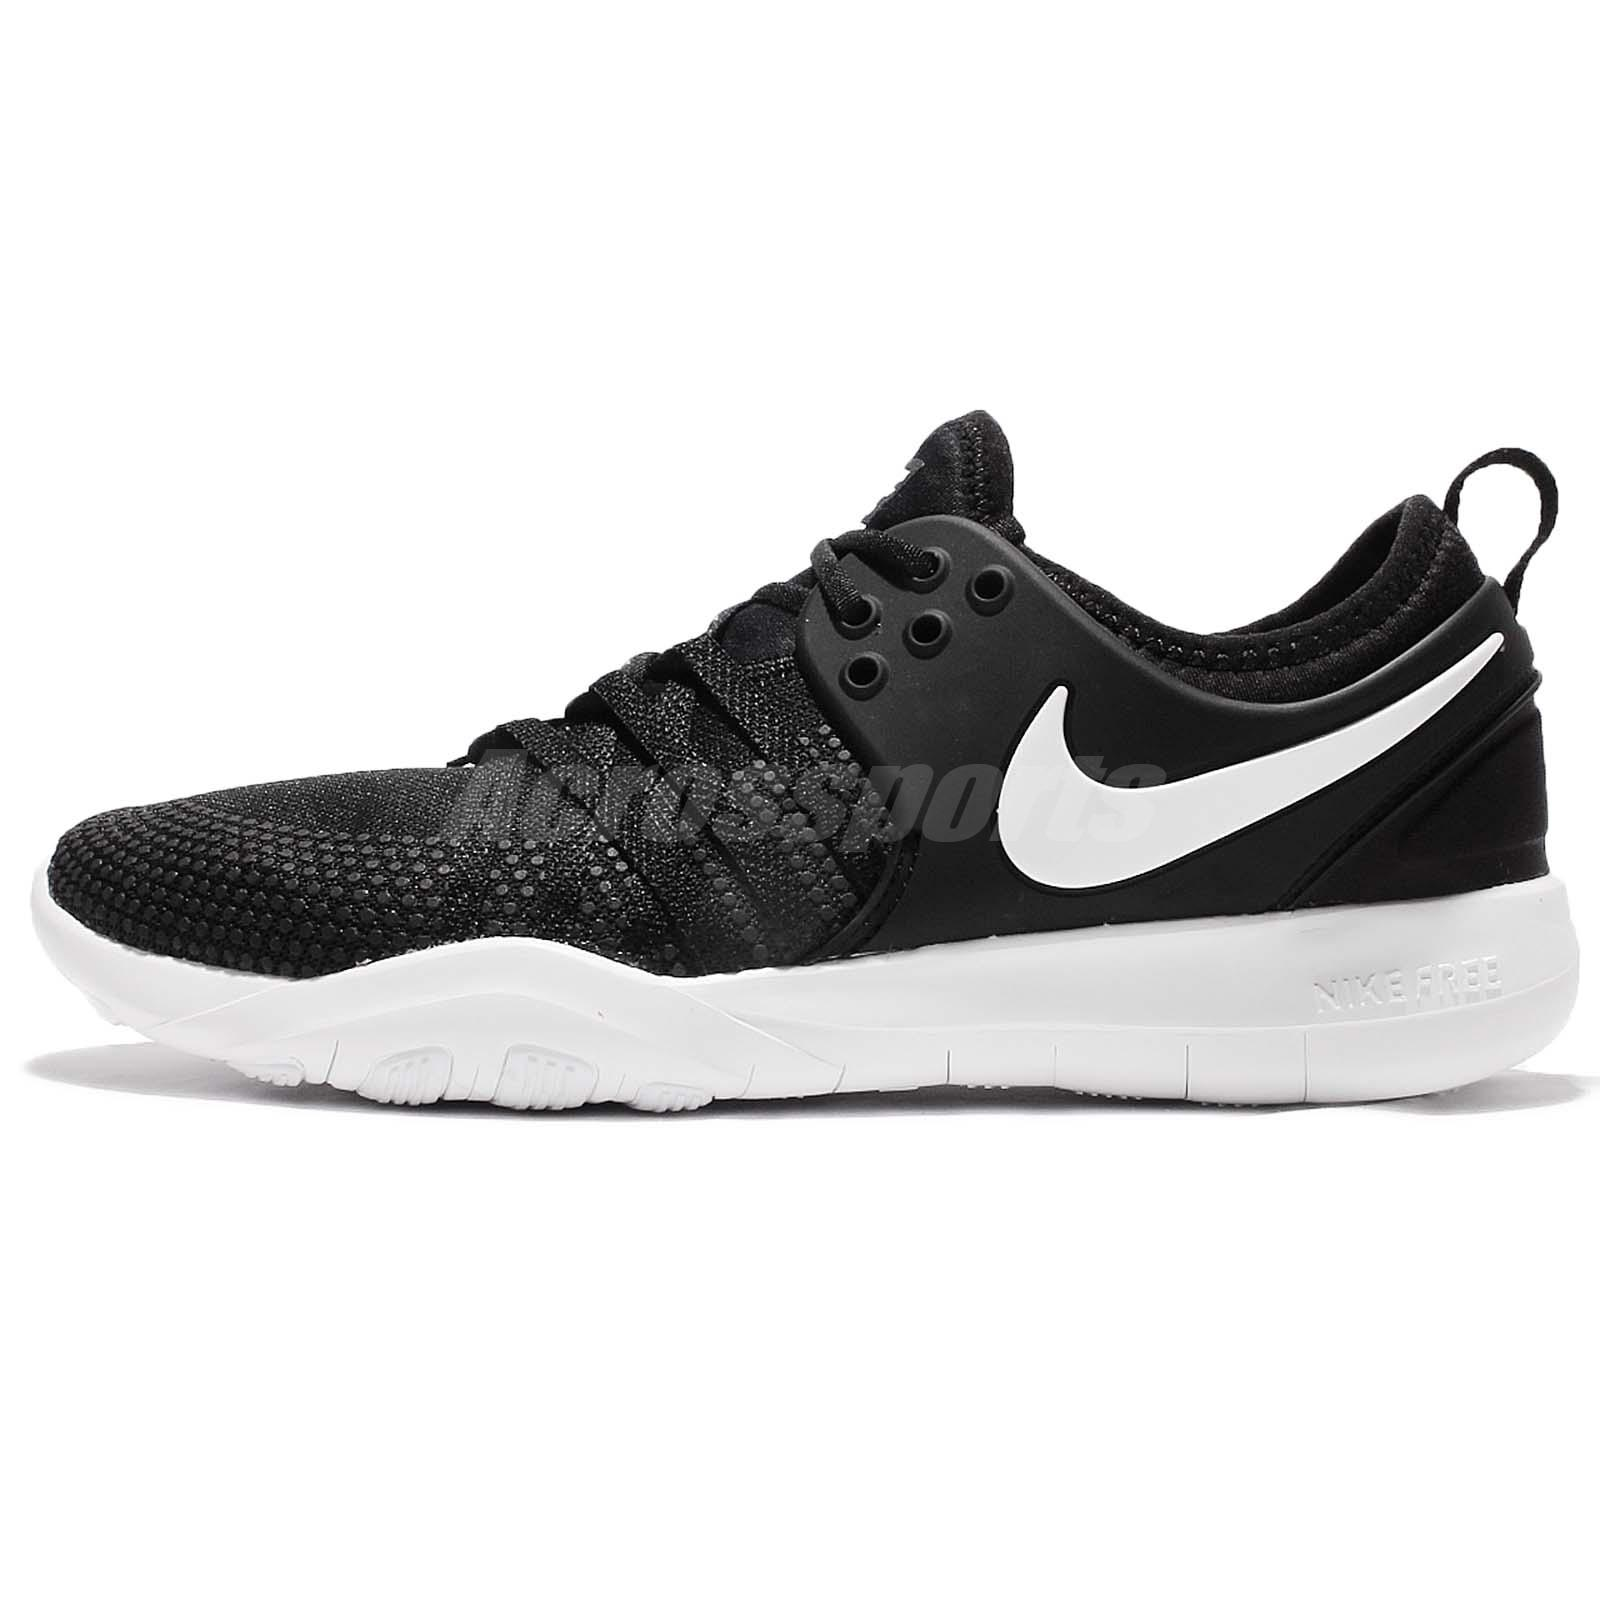 wholesale dealer 61292 0ffe0 Wmns Nike Free TR 7 VII Black White Women Training Shoes Gym Trainers 904651 -001